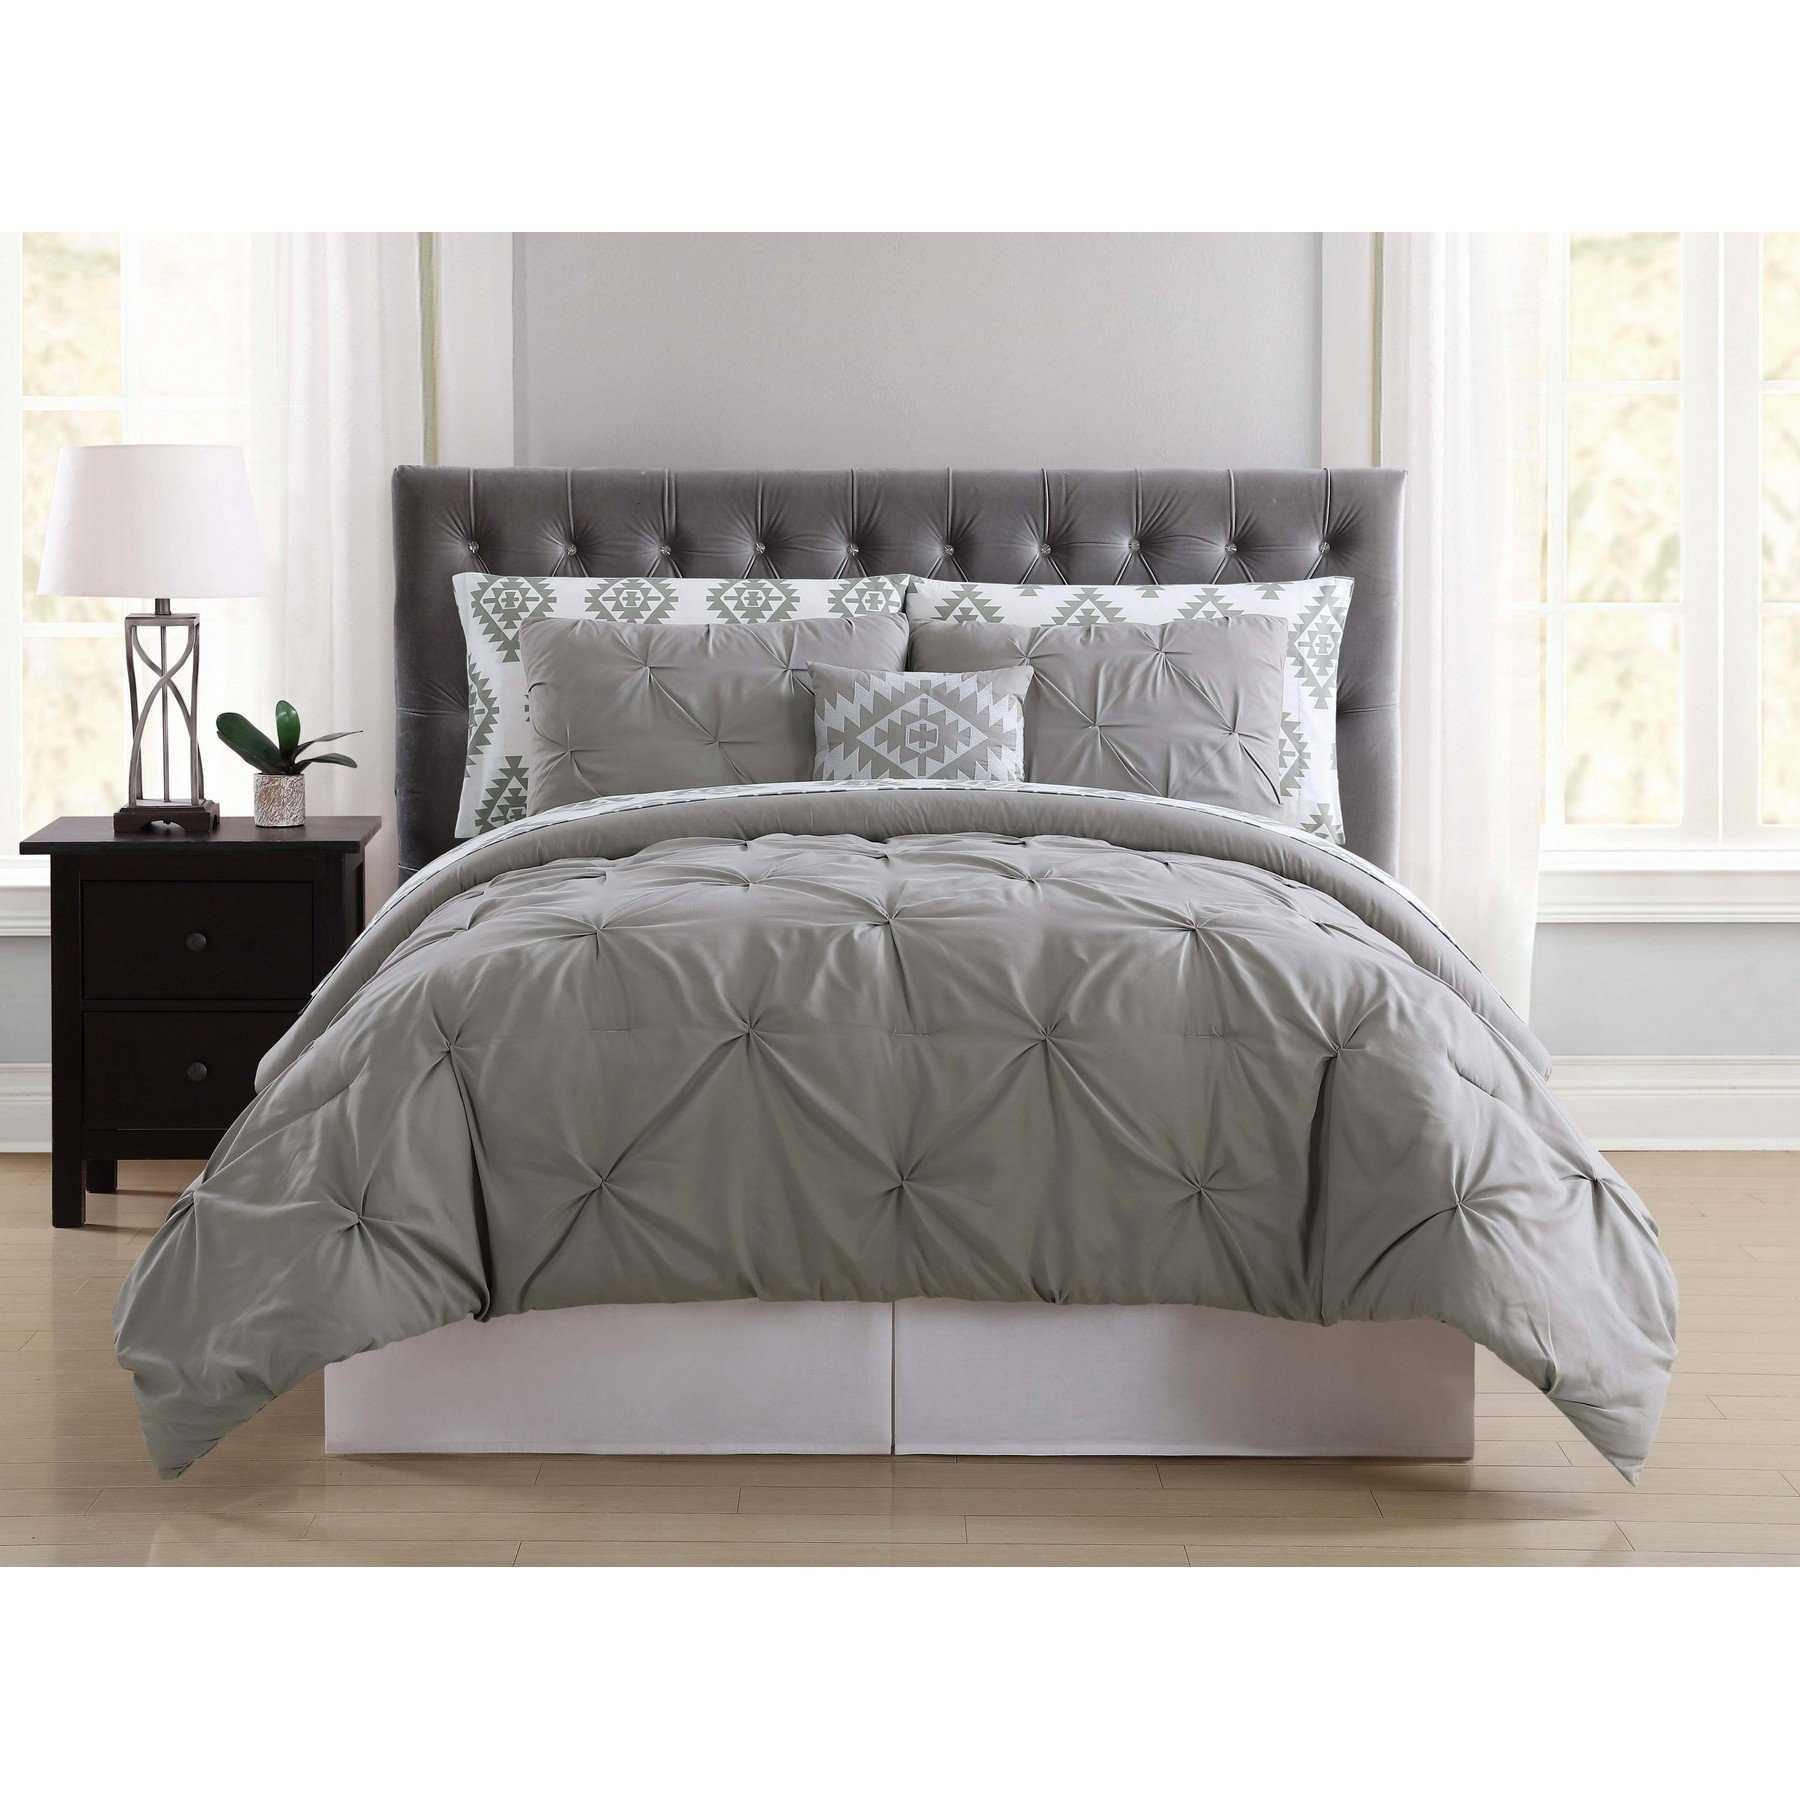 Truly Soft Everyday BIB1969GYKPB-32 Pleated Bed in a Bag, King, Pueblo Grey